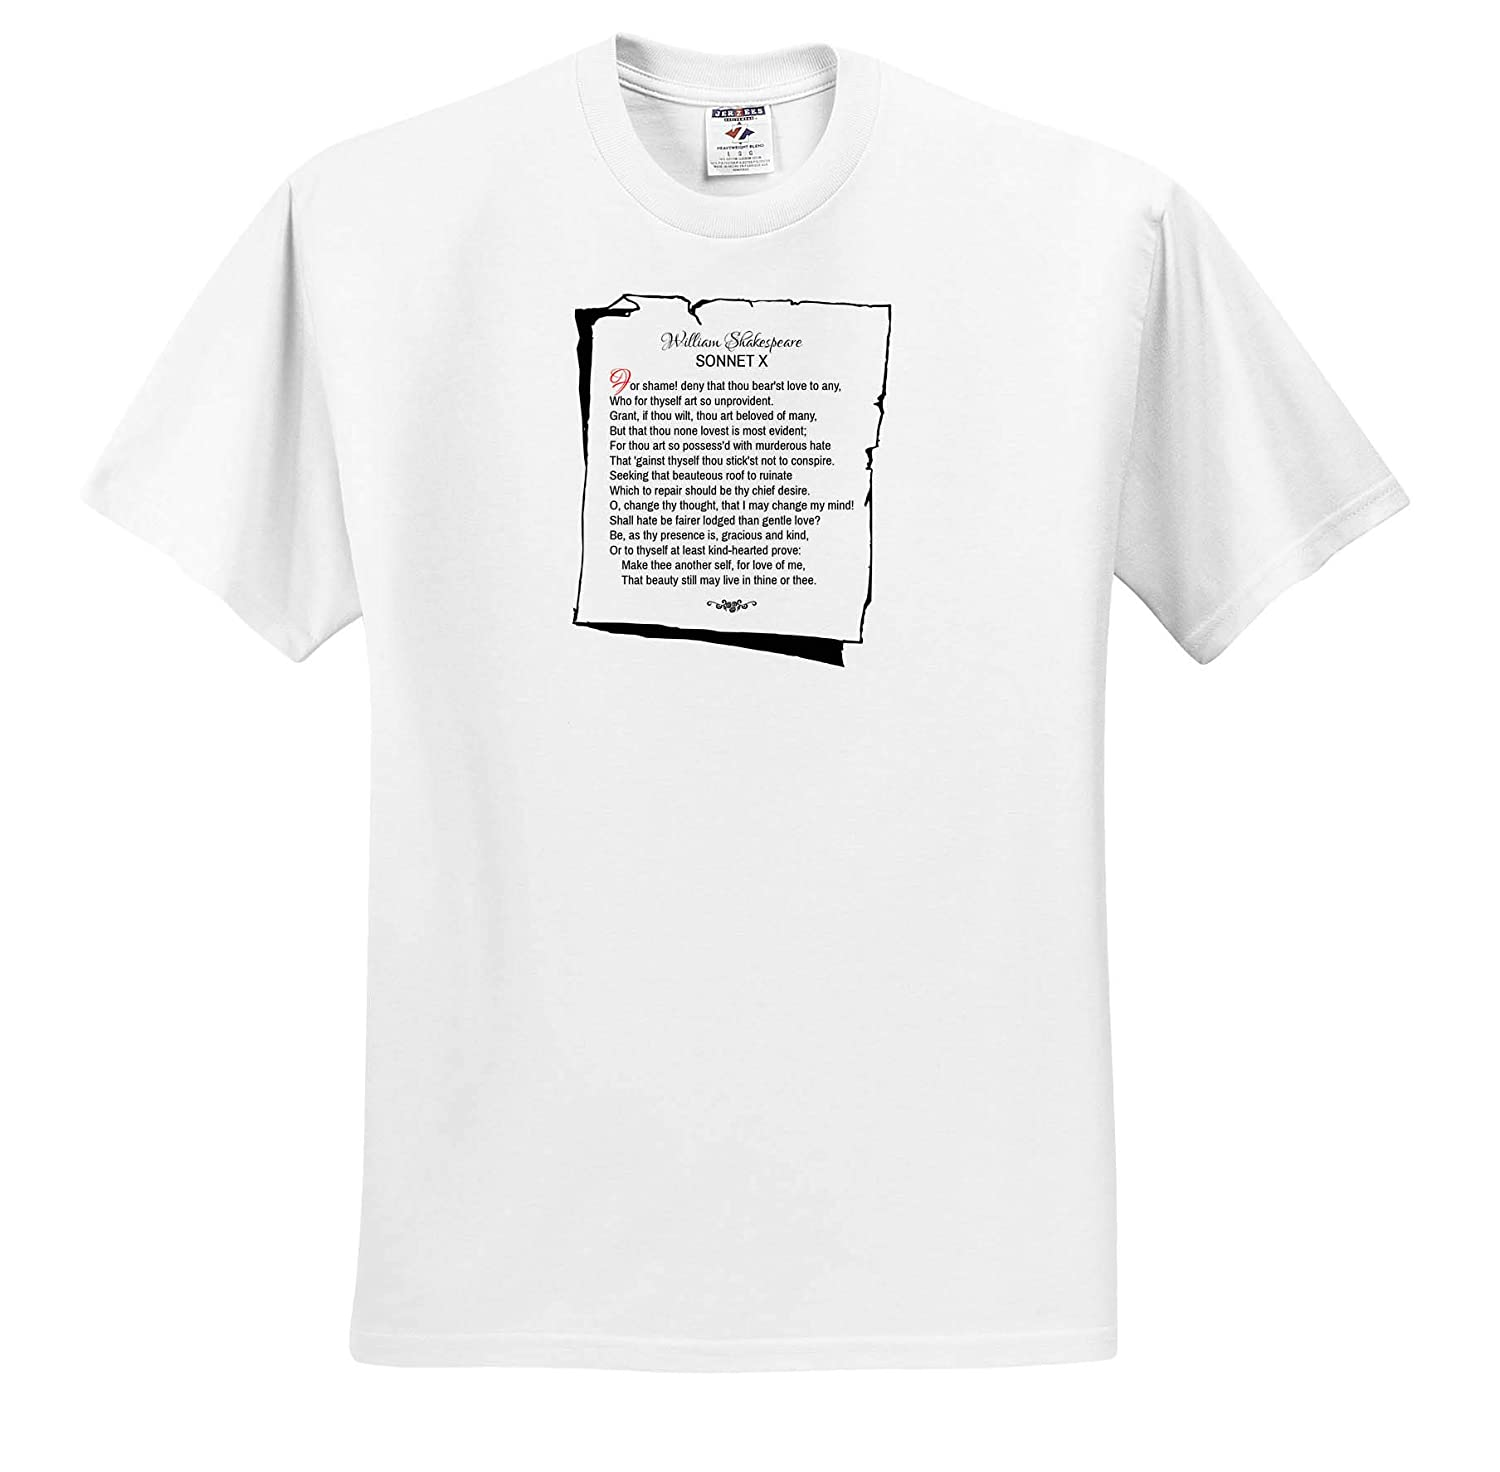 3dRose Alexis Design Poetry Shakespeare Sonnets Sonnet 10 T-Shirts for Shame Deny That Thou bearst Love to Any